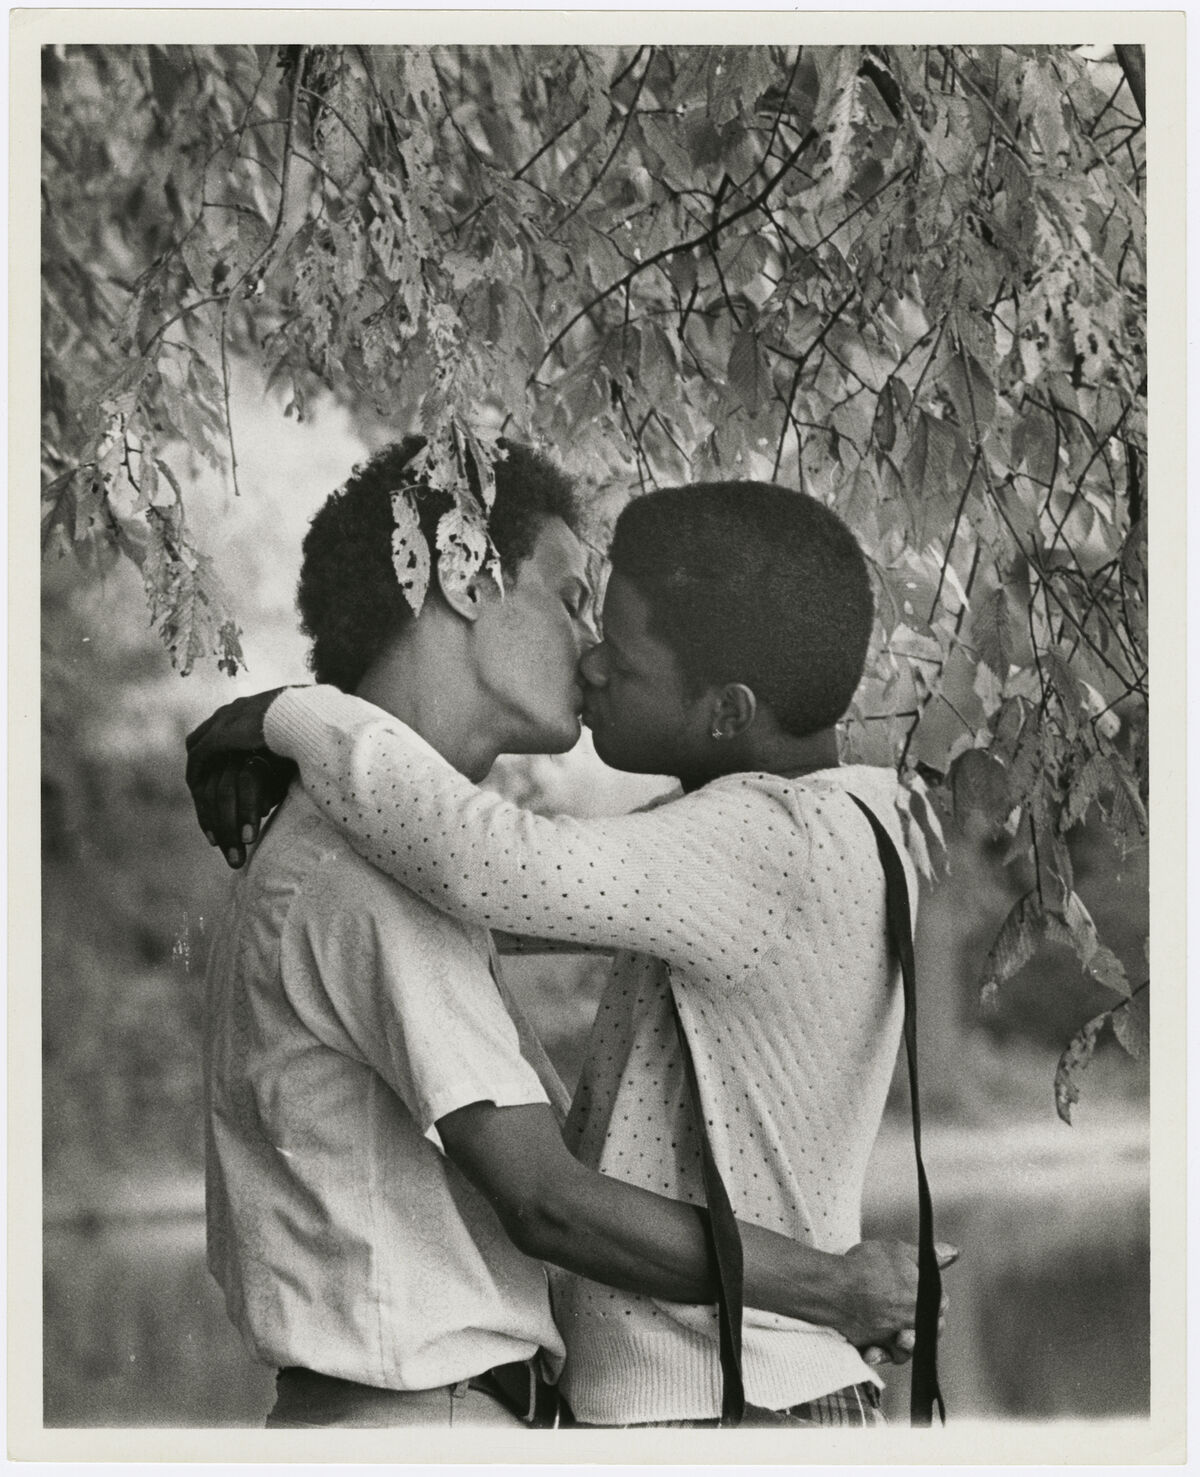 Kay Tobin Lahusen, Men kissing under a tree, 1977. Courtesy of New York Public Library, Manuscripts and Archives Division.